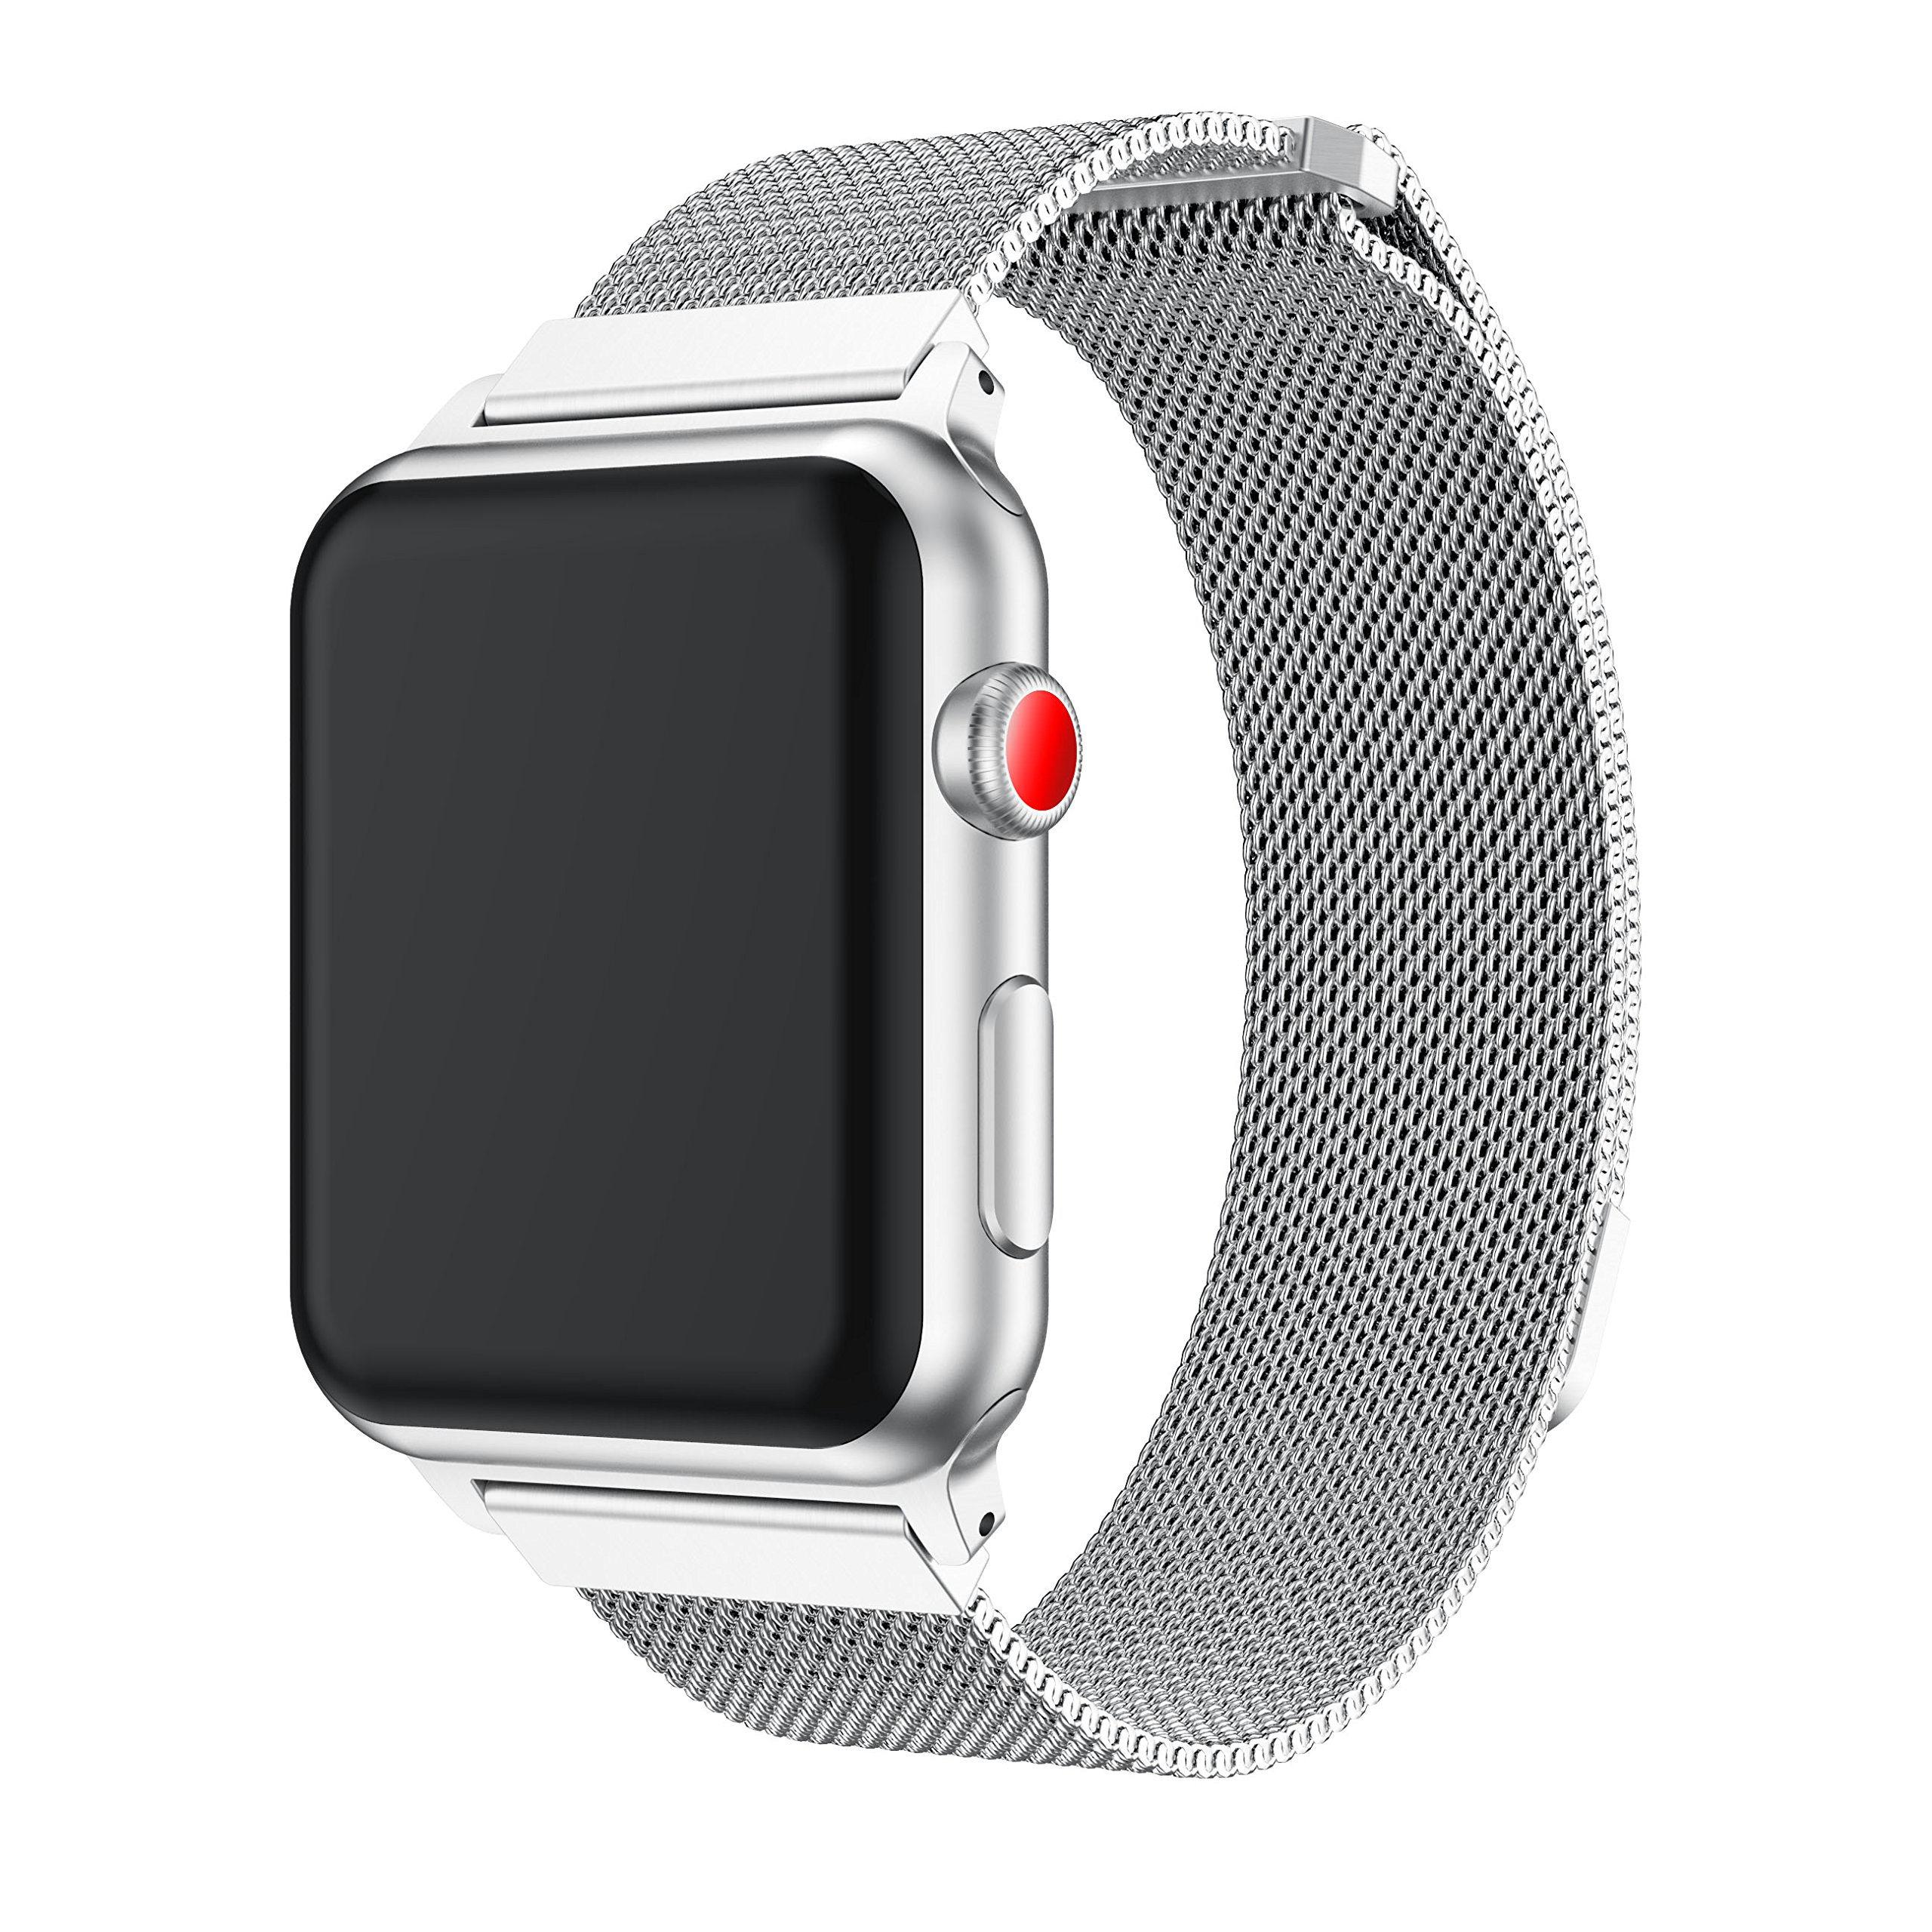 YaSpark Stainless Steel Mesh Milanese Loop with Adjustable Magnetic Closure Replacement Metal iWatch Band for Apple Watch Series 2 Series 1 Nike+ Sport and Edition 38mm/42mm (sliver, 38mm)